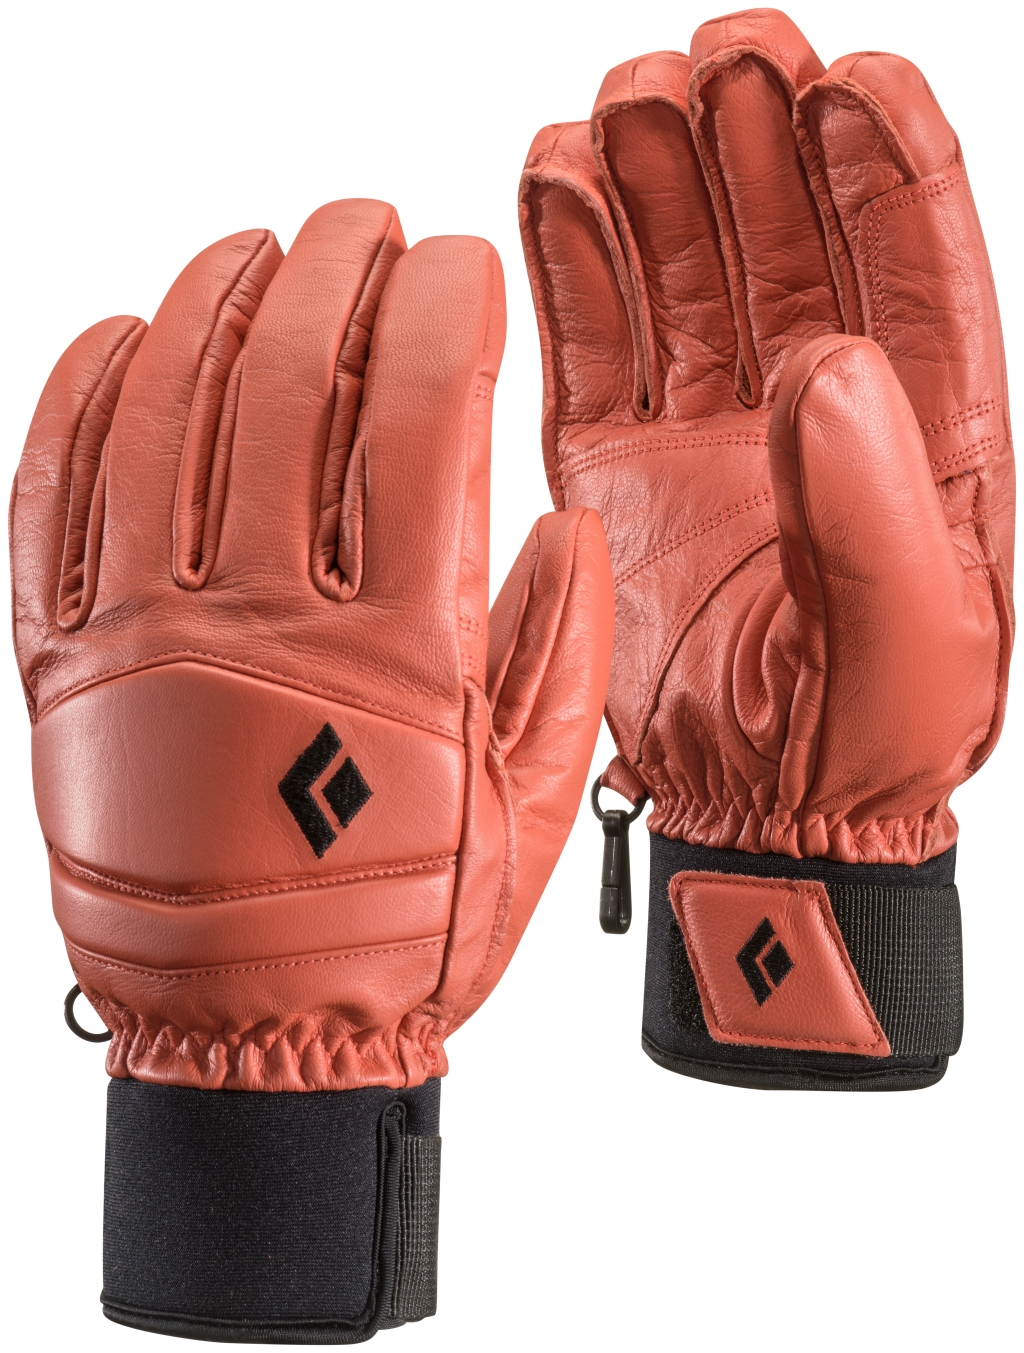 Black Diamond Spark Gloves Octane-30